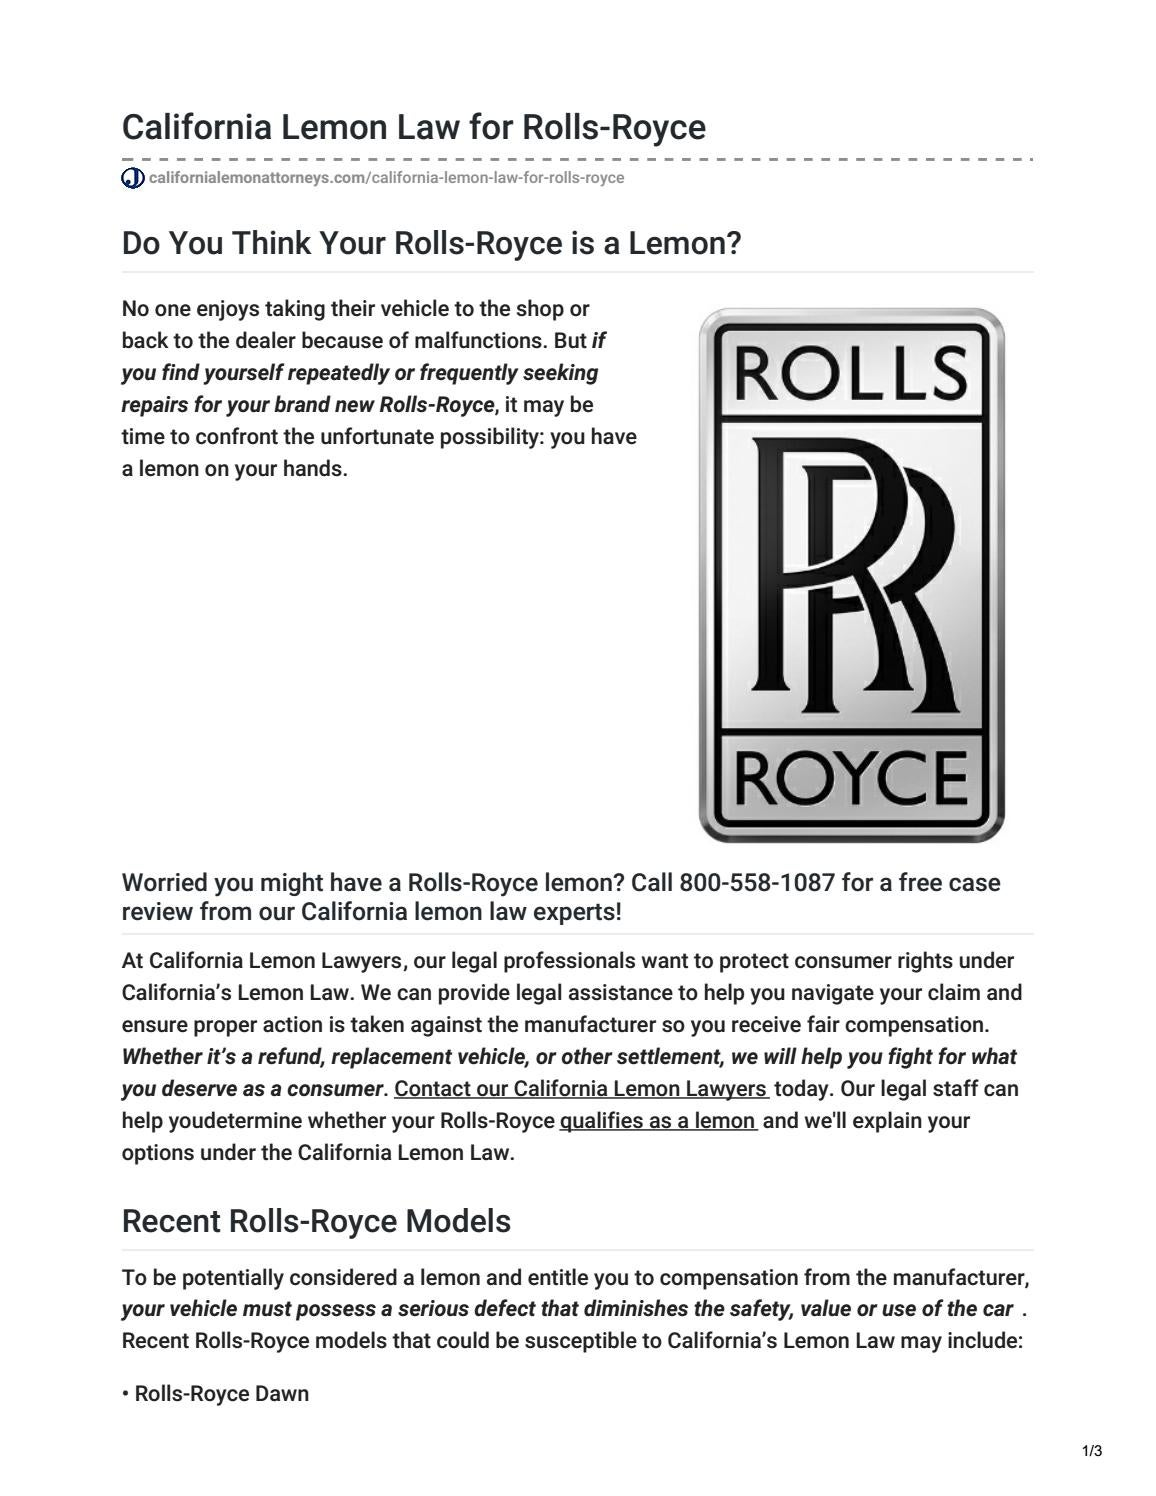 California Lemon Law >> California Lemon Law For Rolls Royce By California Lemon Attorneys